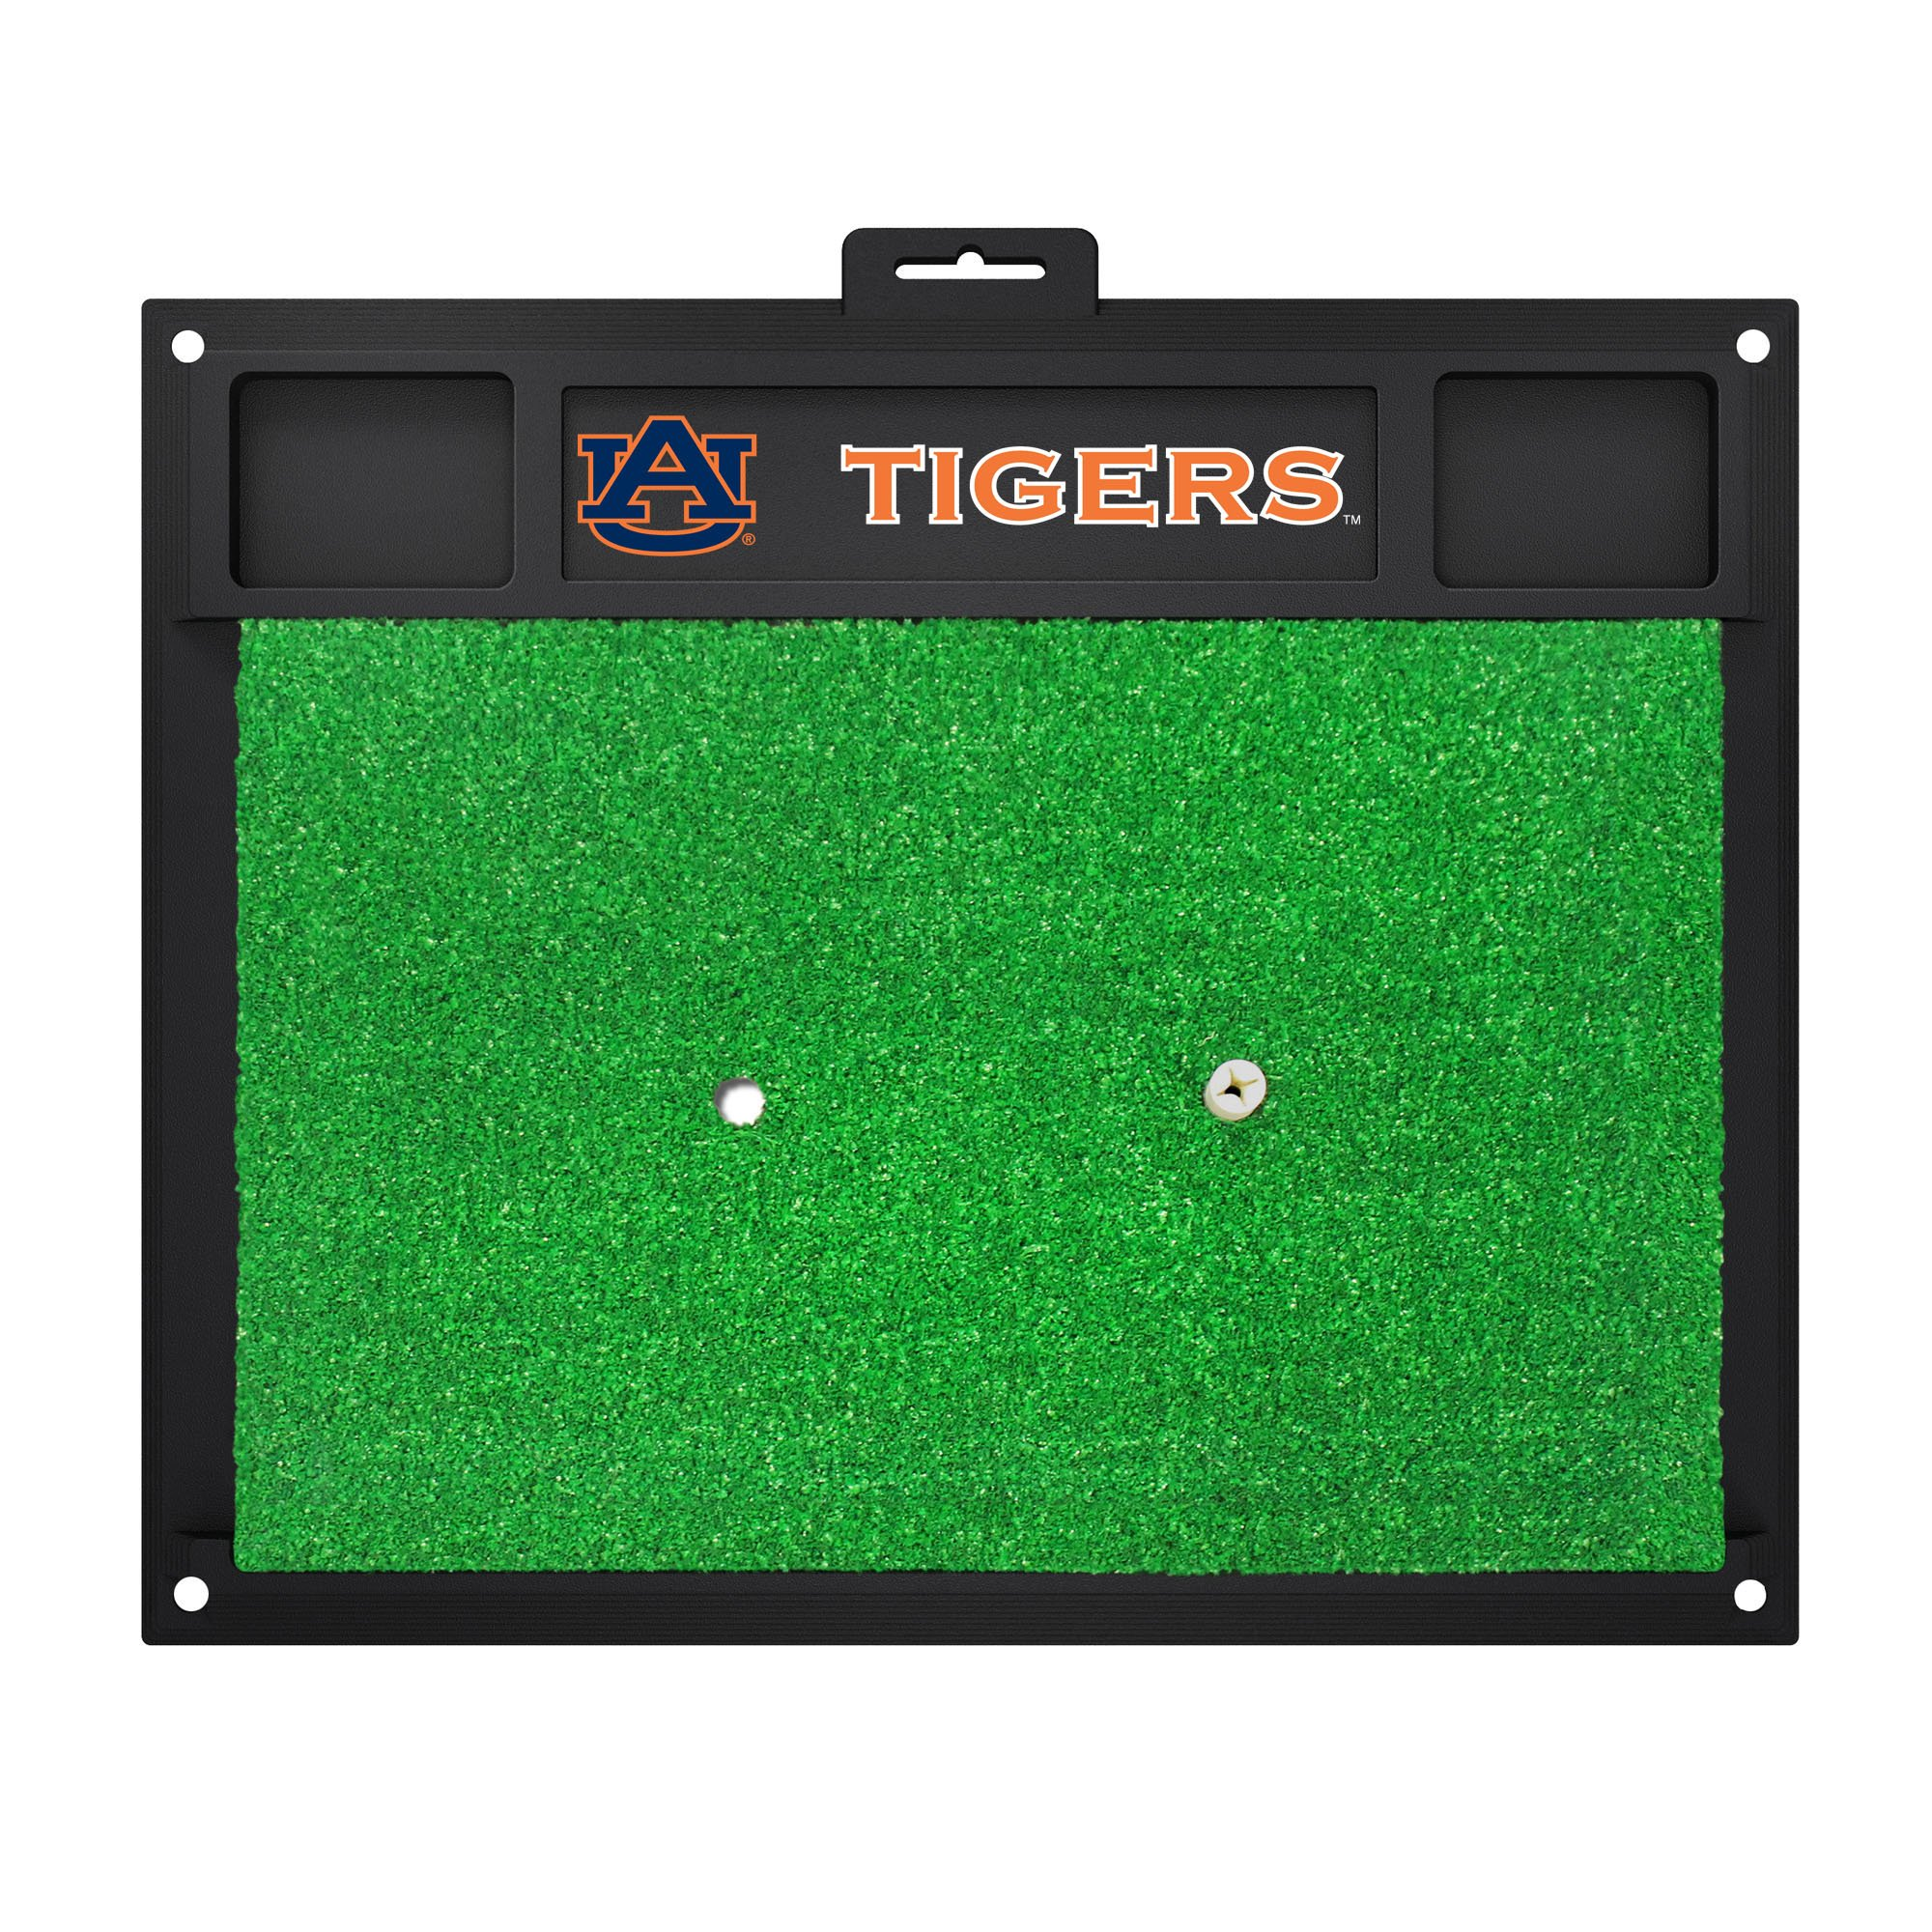 Fanmats 15489 Auburn University Golf Hitting Mat